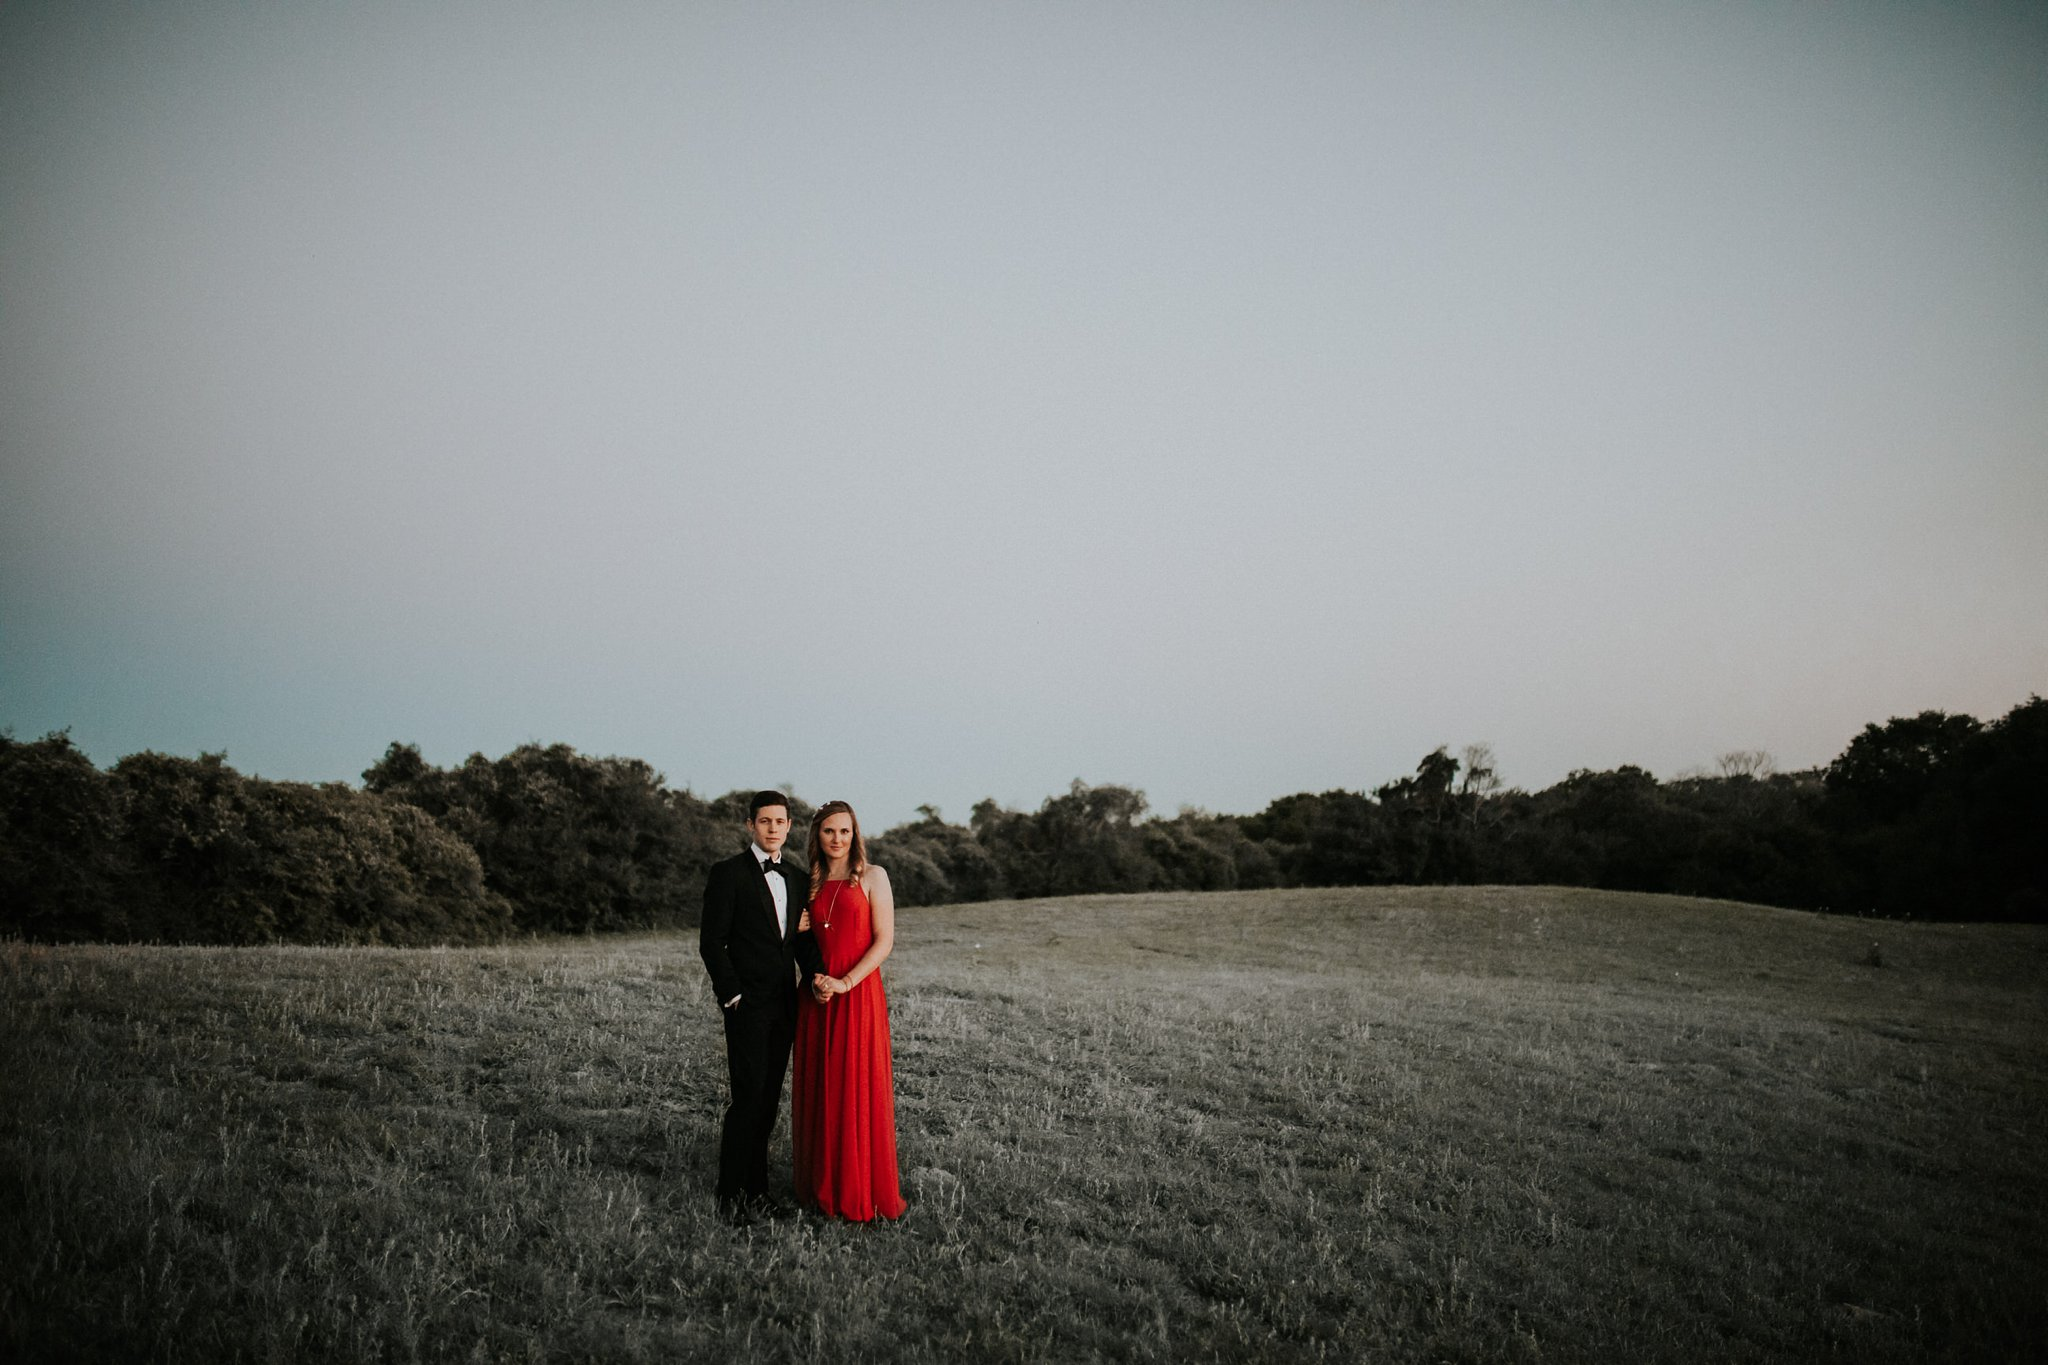 Madeleine Frost - Texas Wedding Photographer - Karen and Tyler -2314.jpg